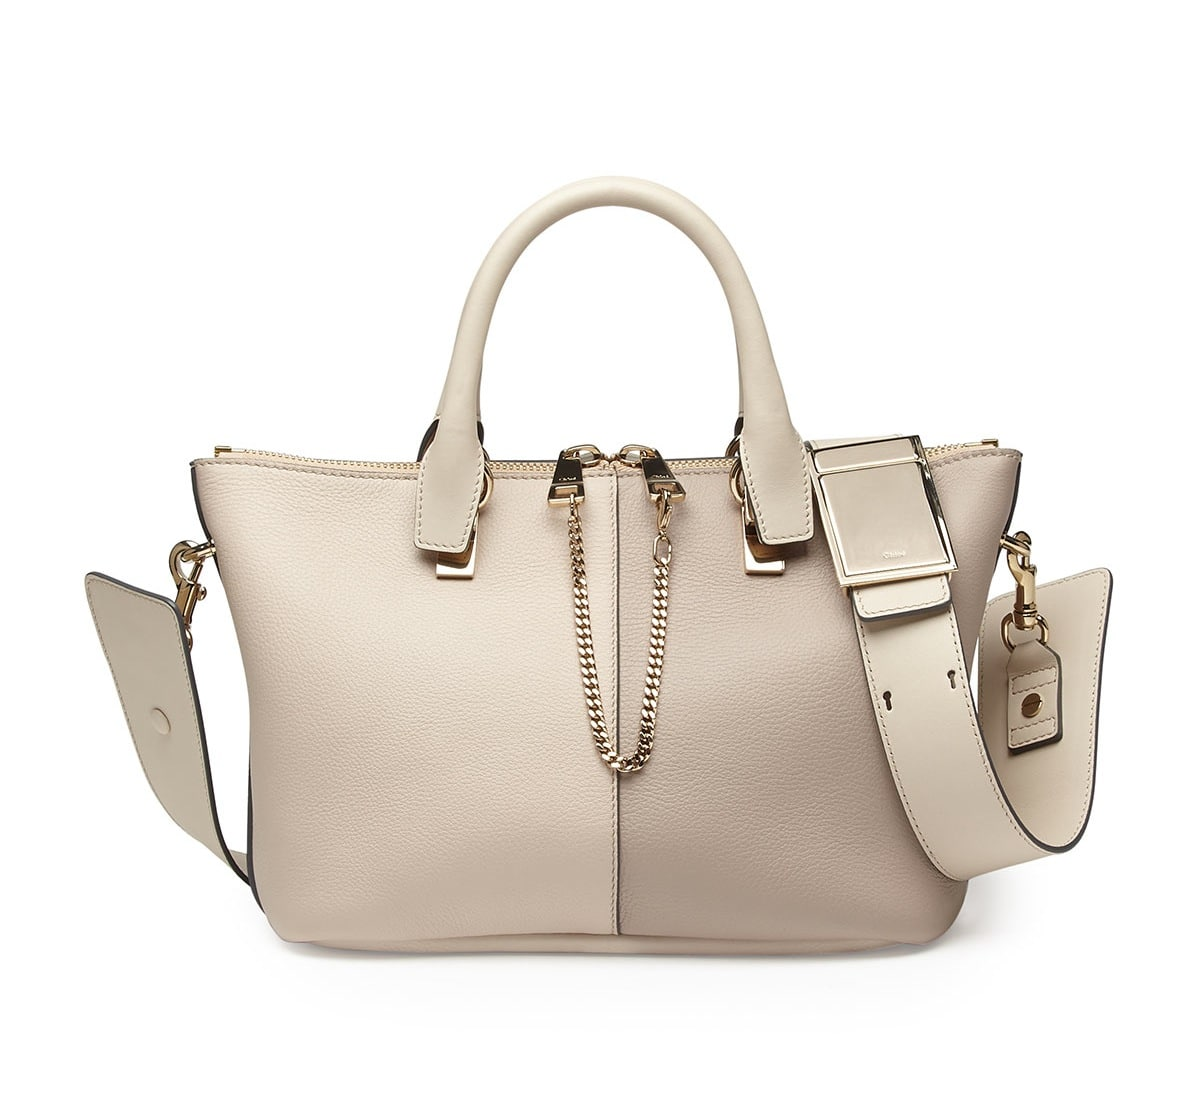 Chloe Two Tone Baylee Bag Reference Guide | Spotted Fashion